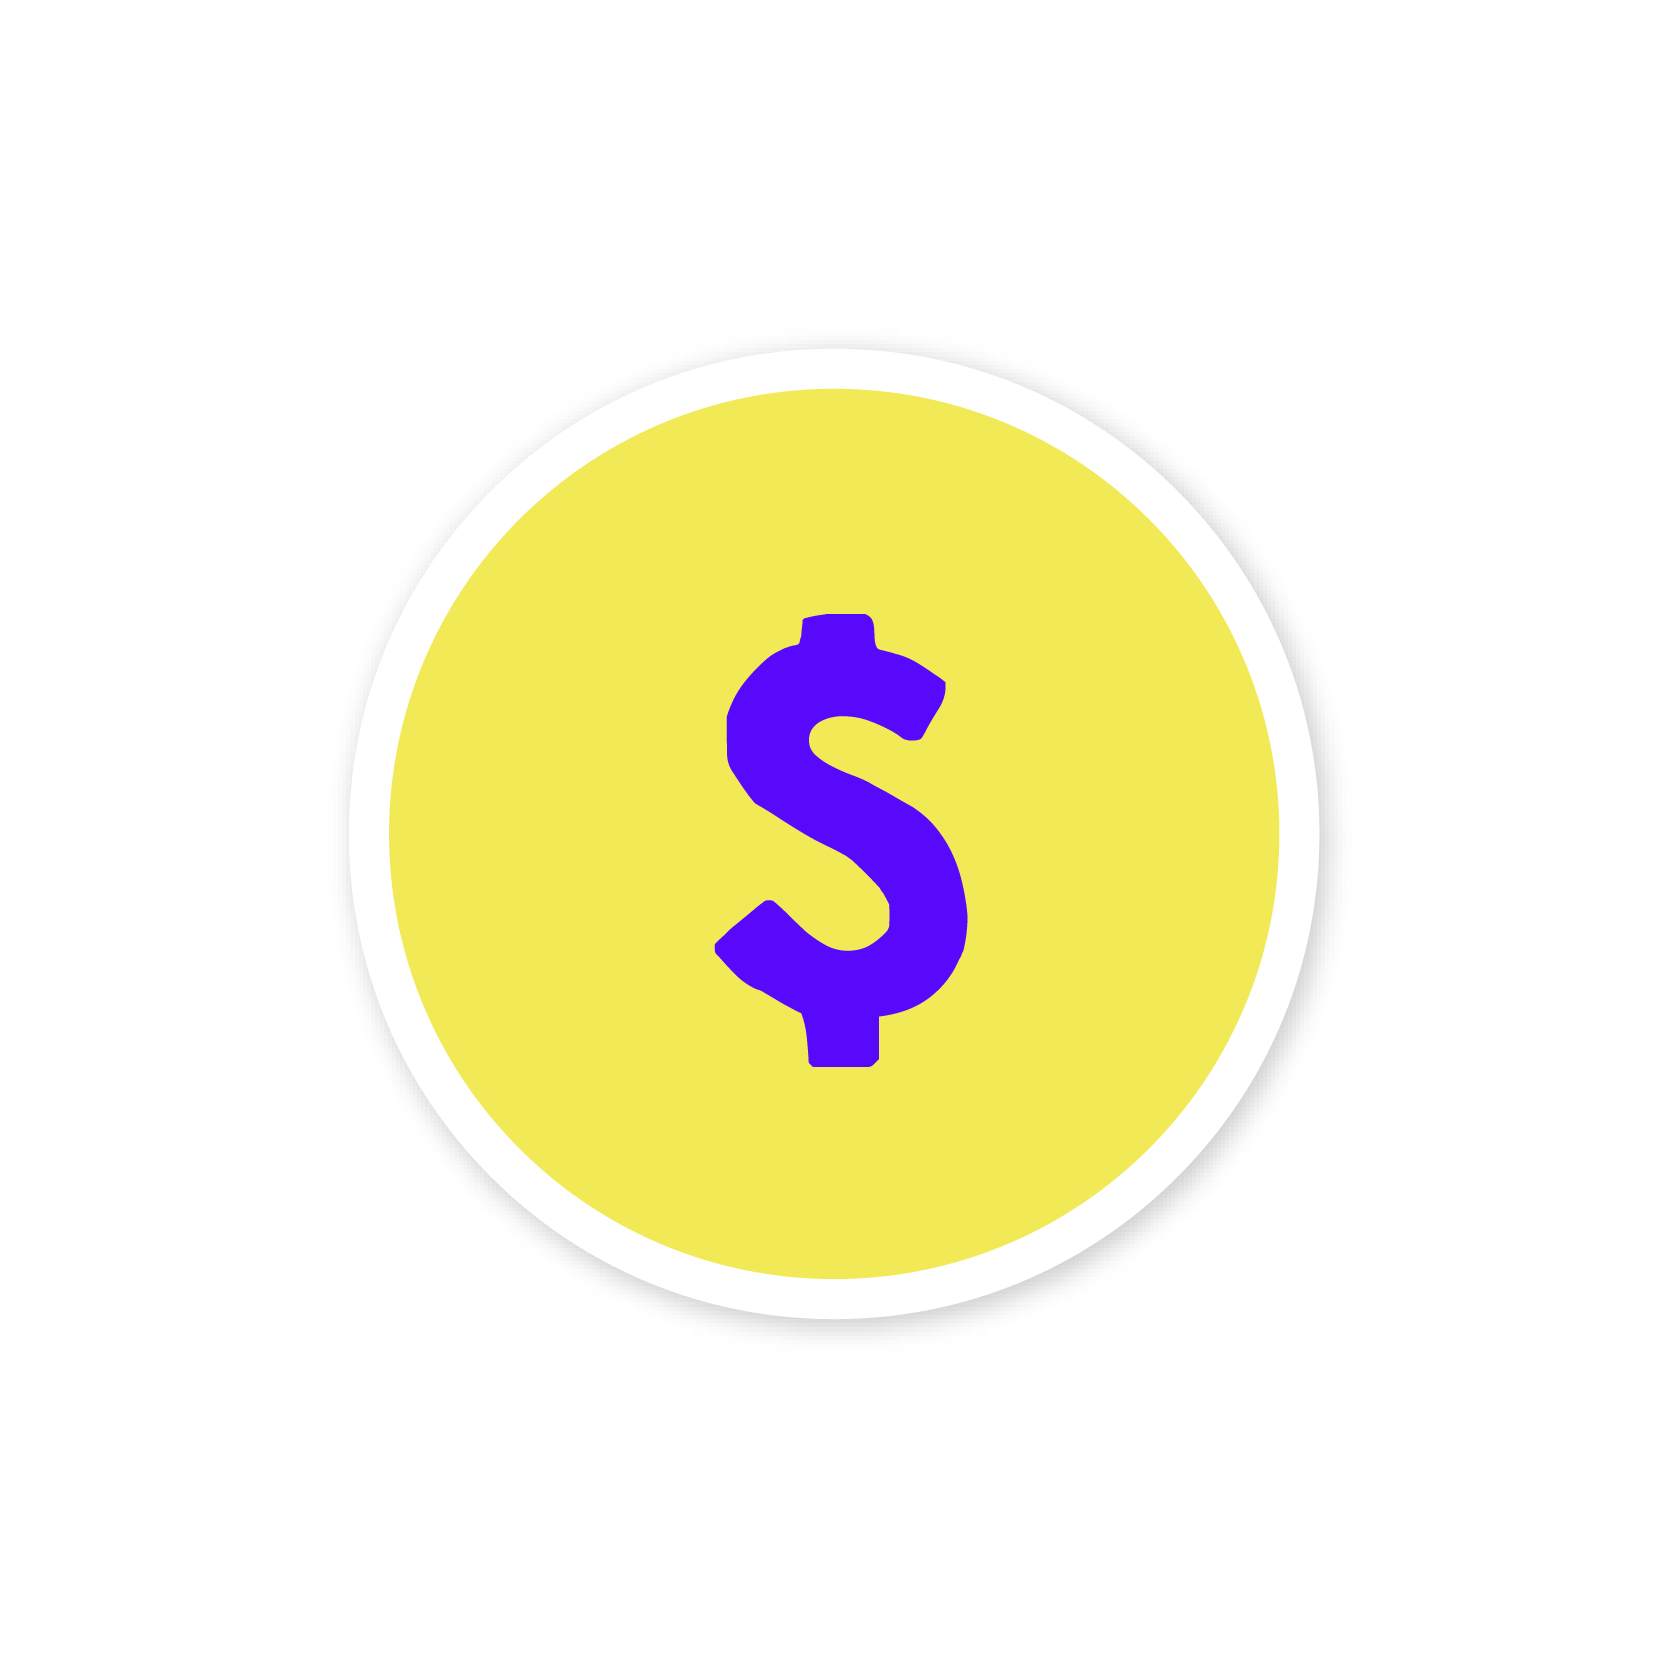 A yellow sticker with a dollar sign